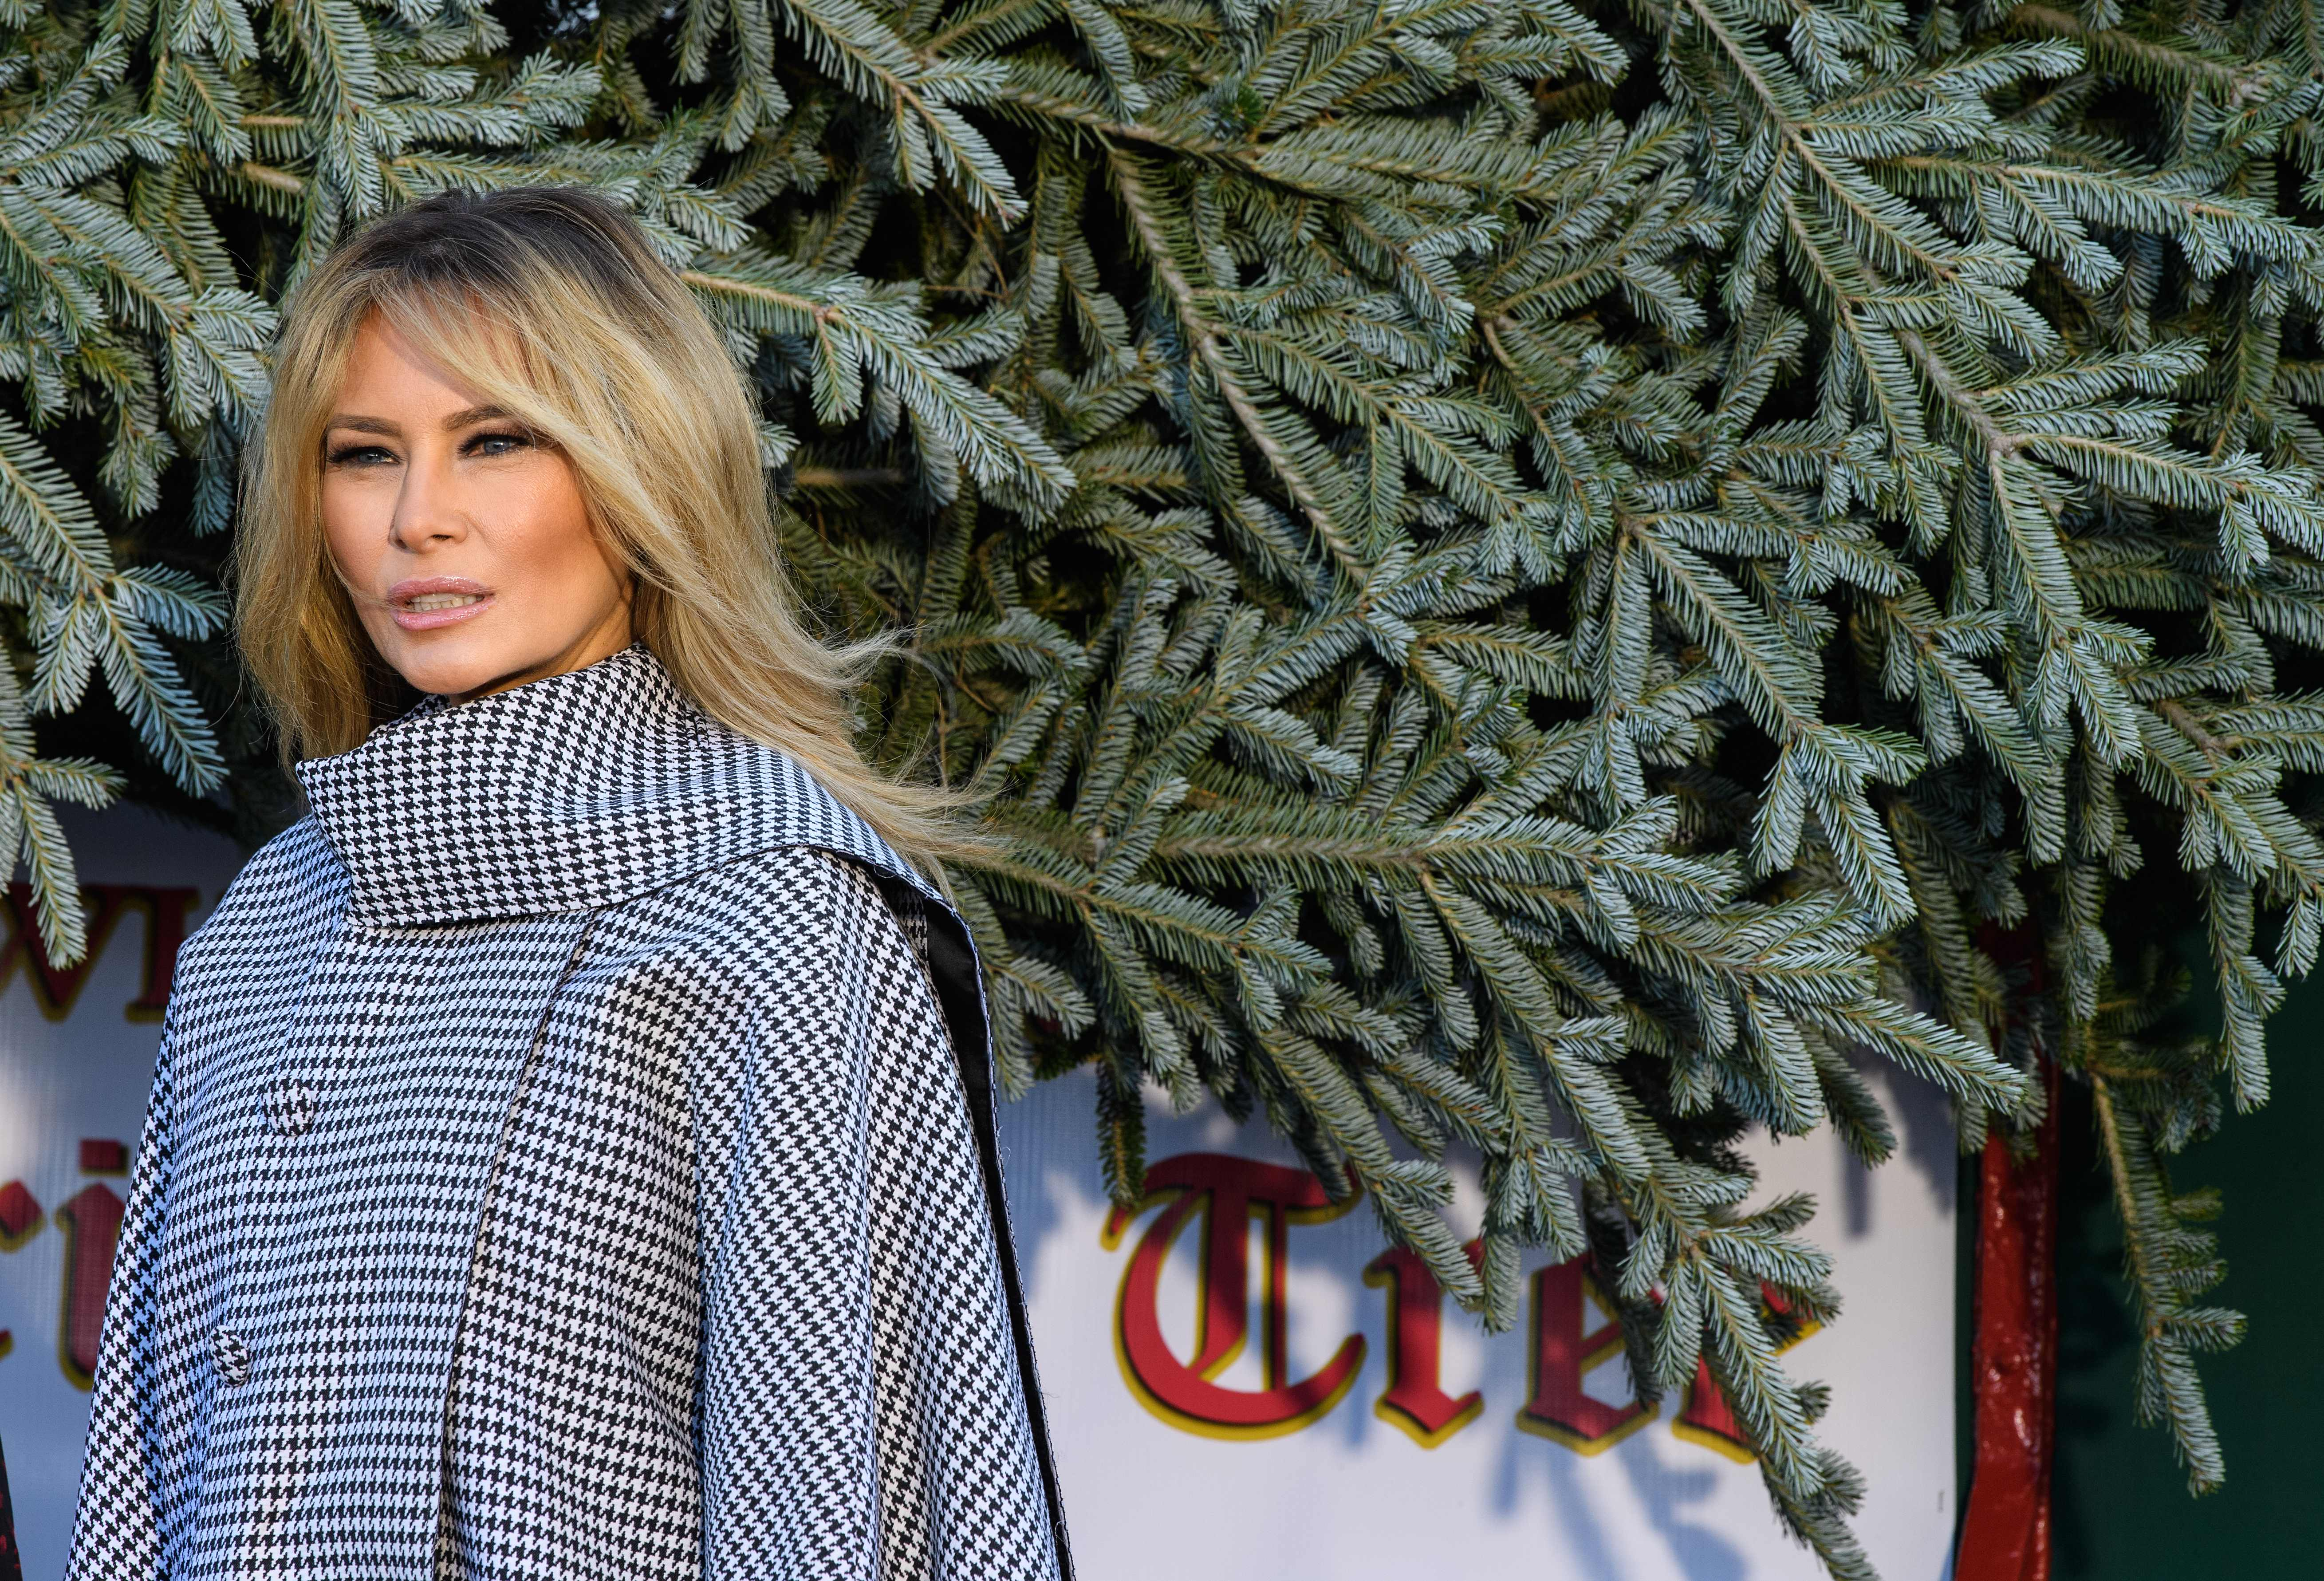 Trump 2021 Christmas Message Melania Trump Christmas Decorations Told Us Everything We Needed To Know About The First Lady The Washington Post